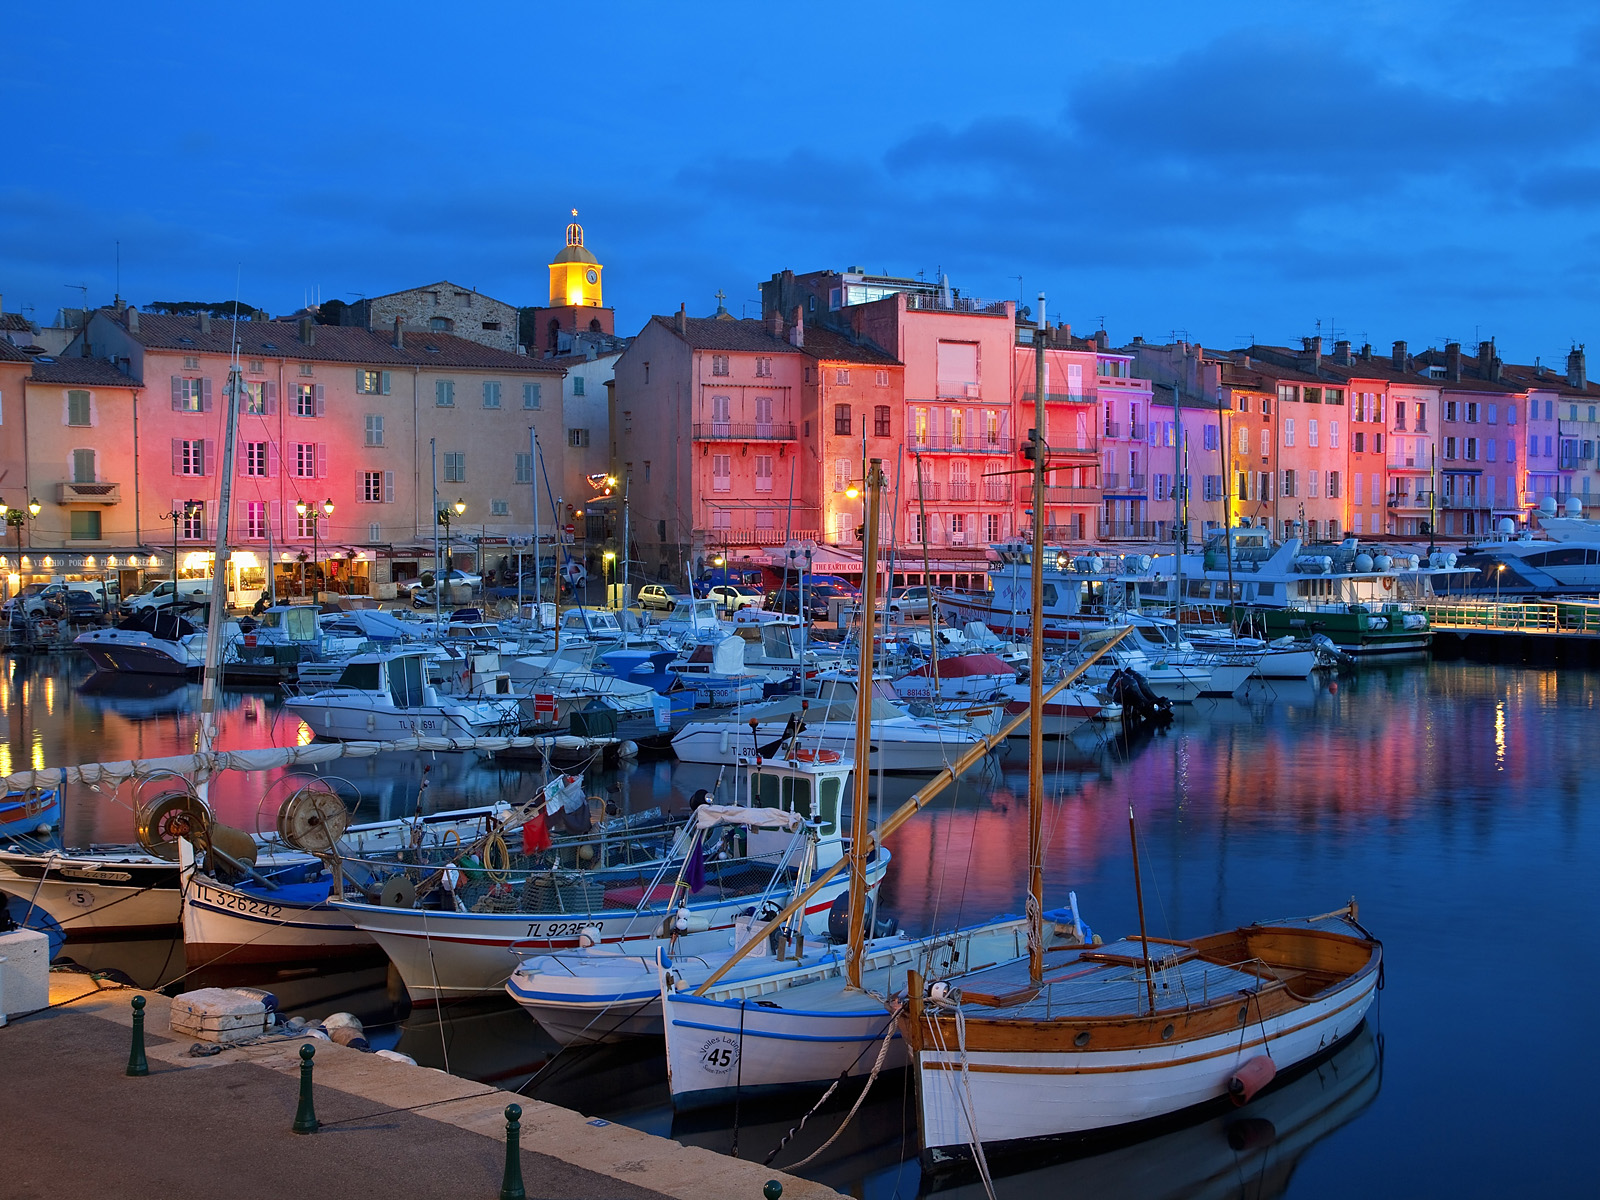 Saint-Tropez by night